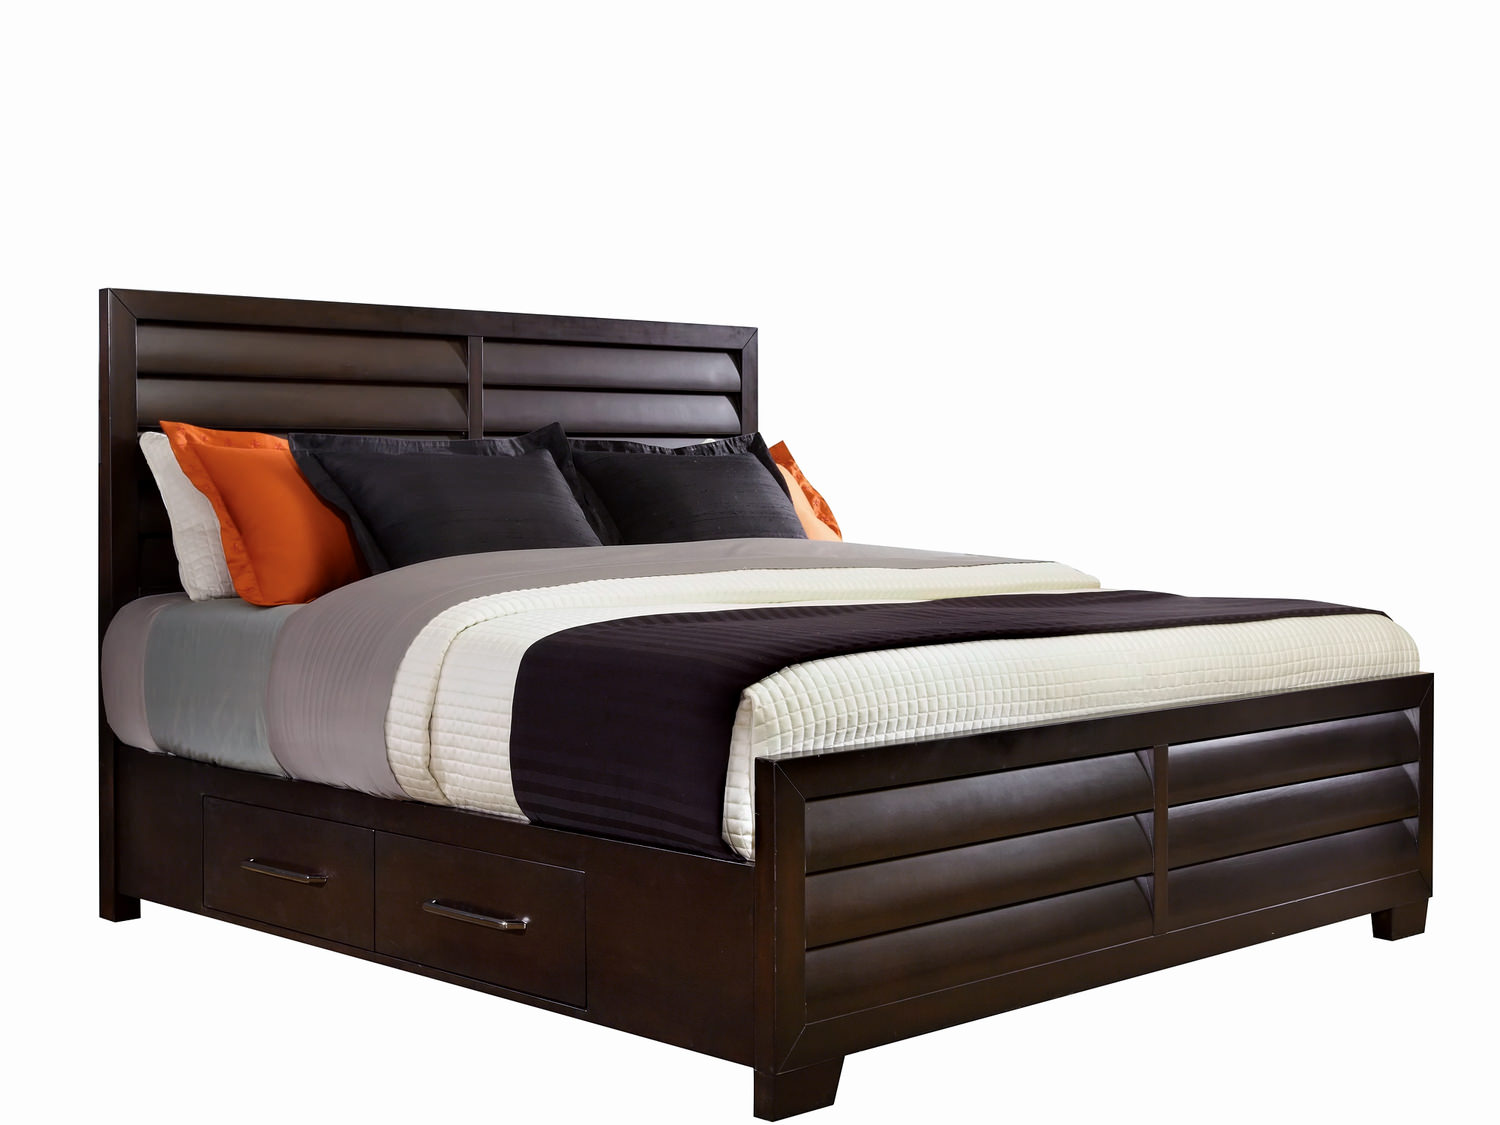 Vogue Queen Panel Bed With Two Plain Rails